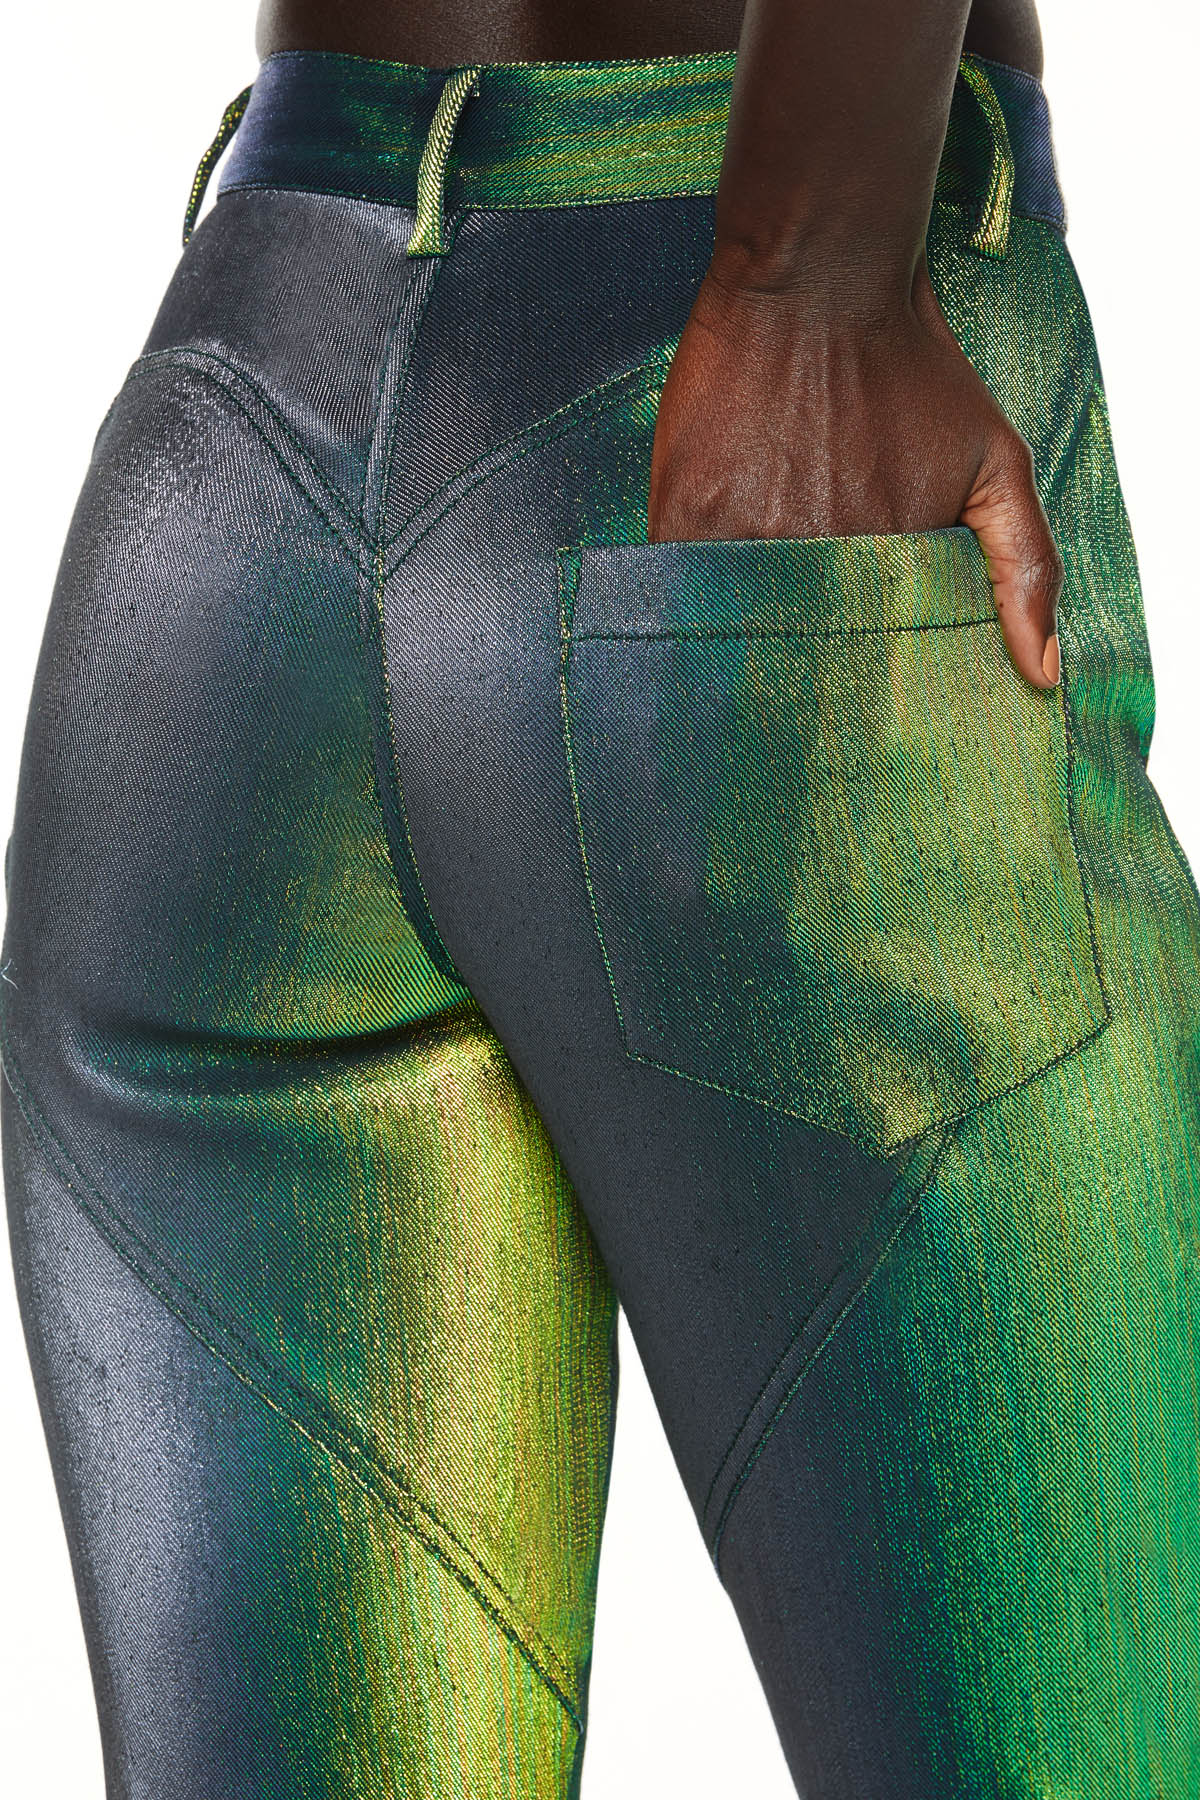 Stretch lamé pant features heart-shaped seaming on back. Detailed with AREA logo hardware button closure. Available in beetle green.